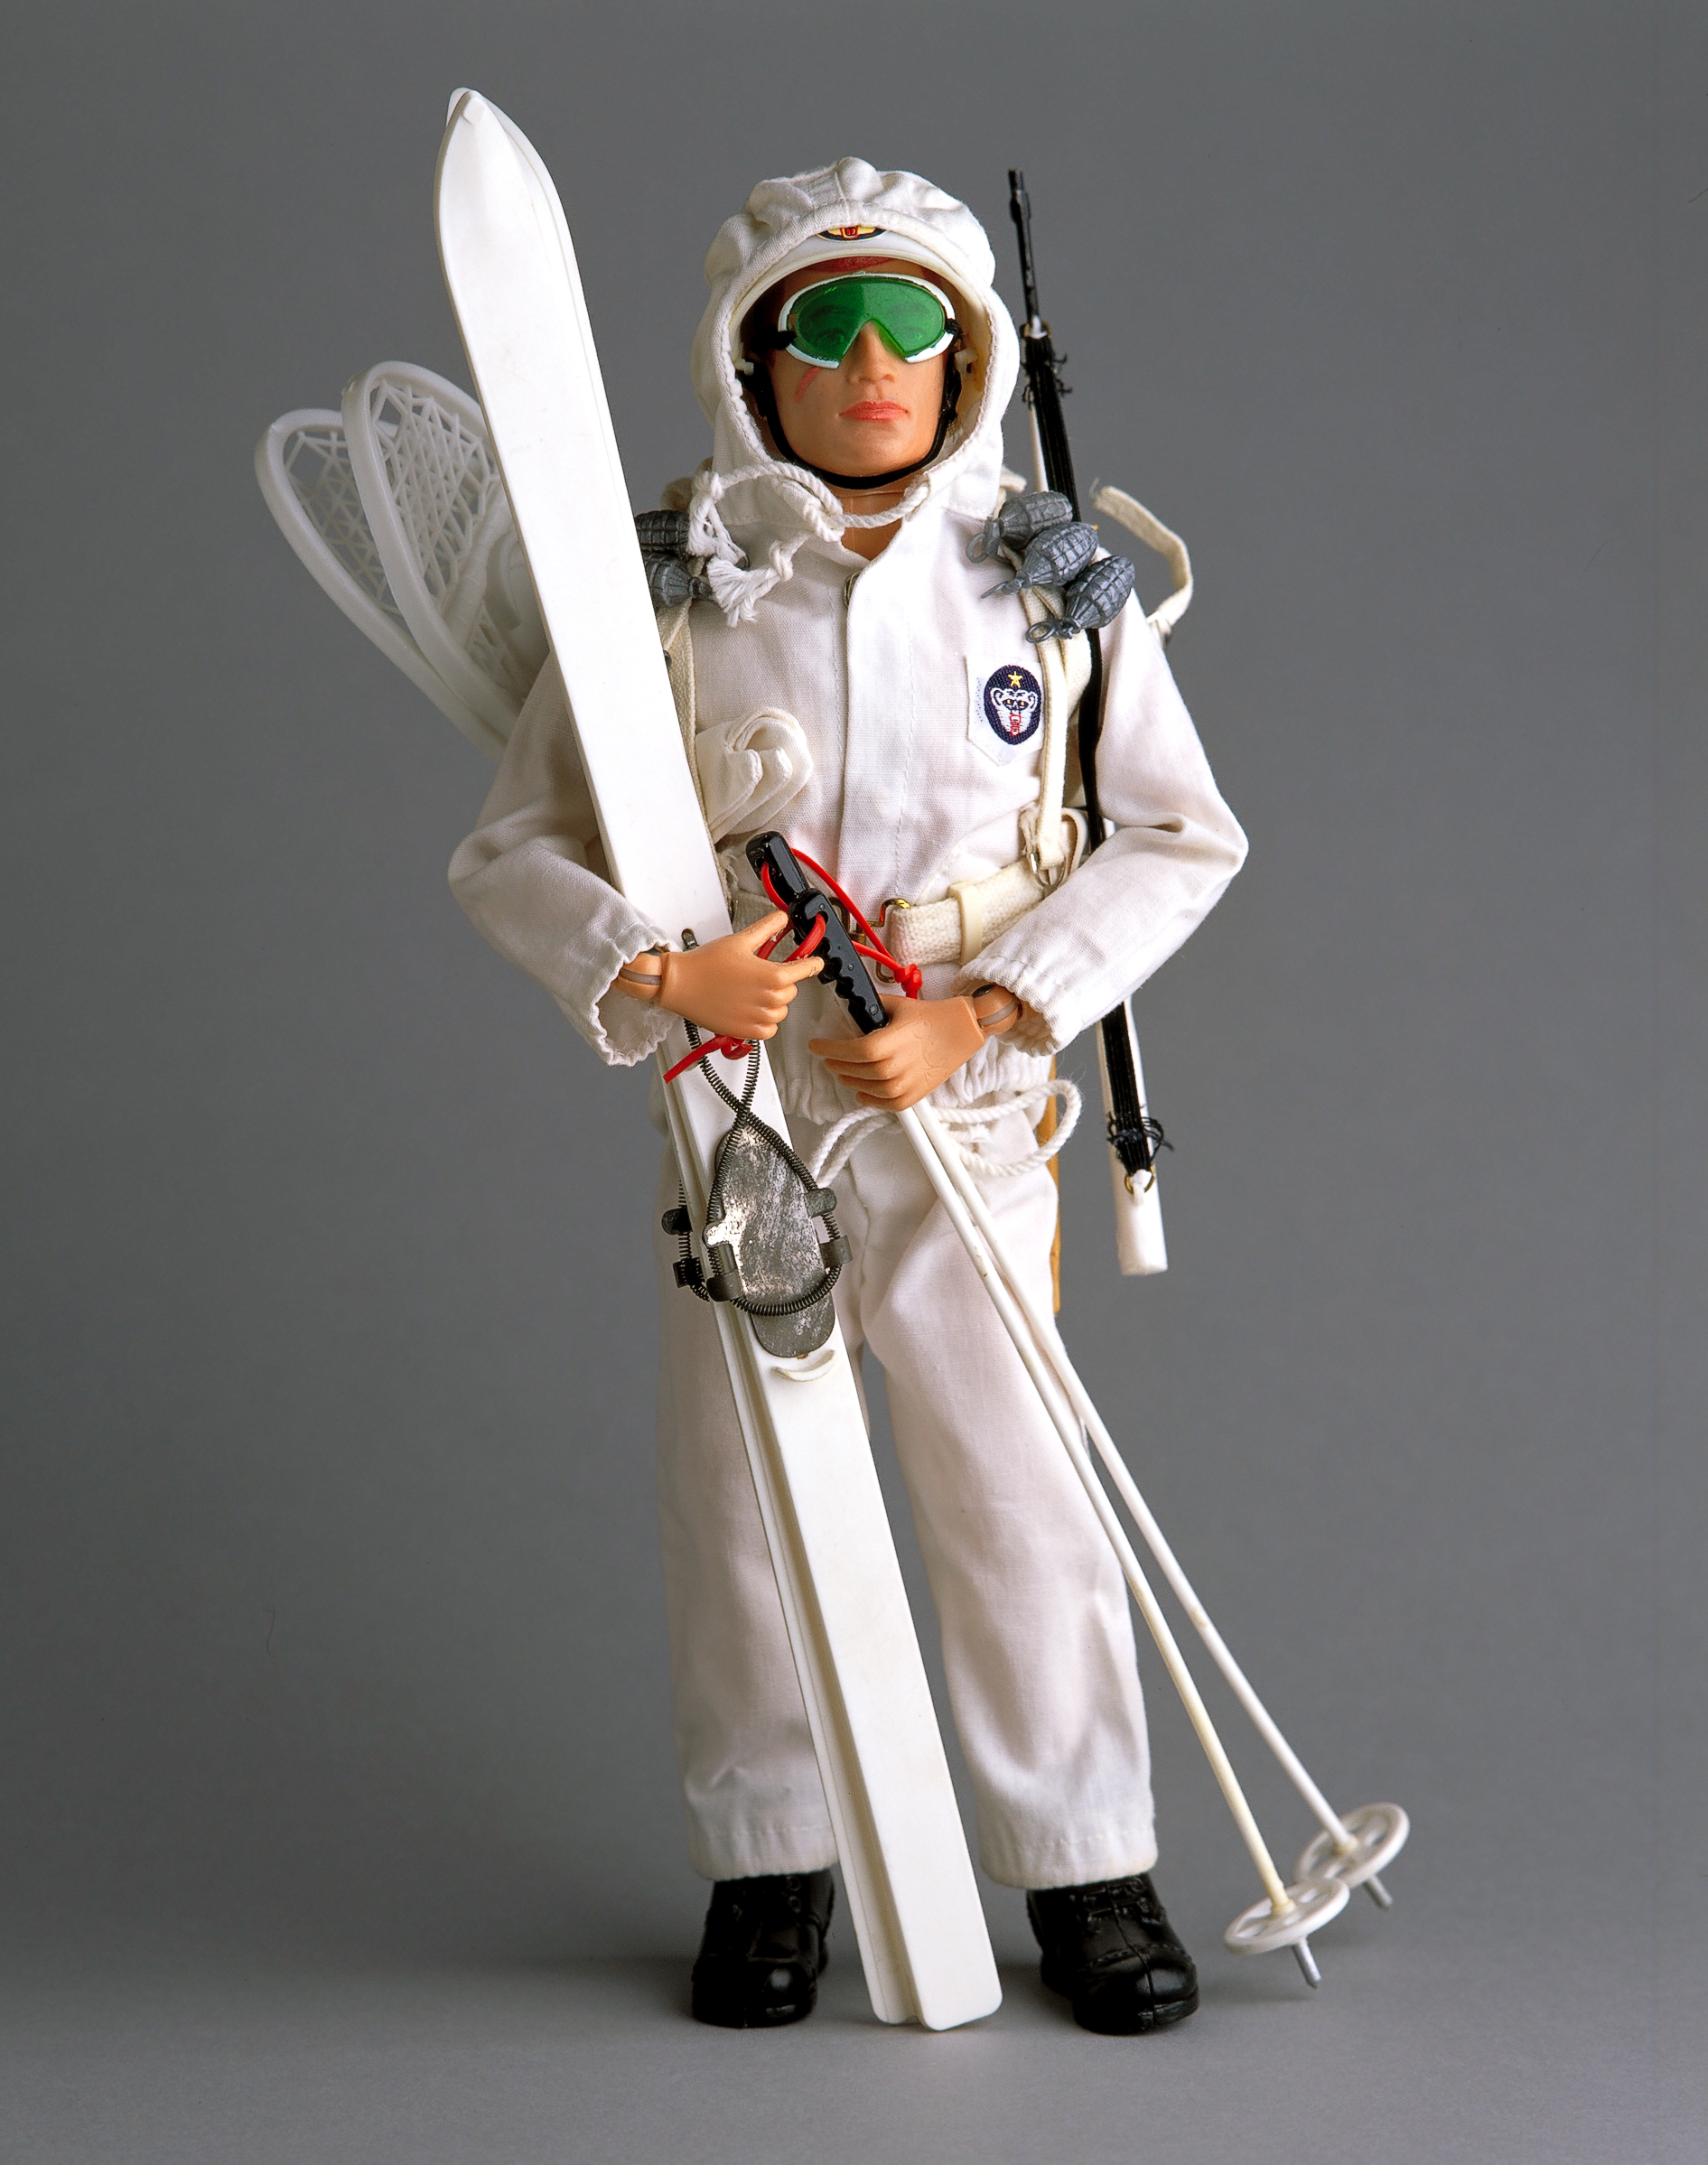 8-Snowman GI Joe Edit